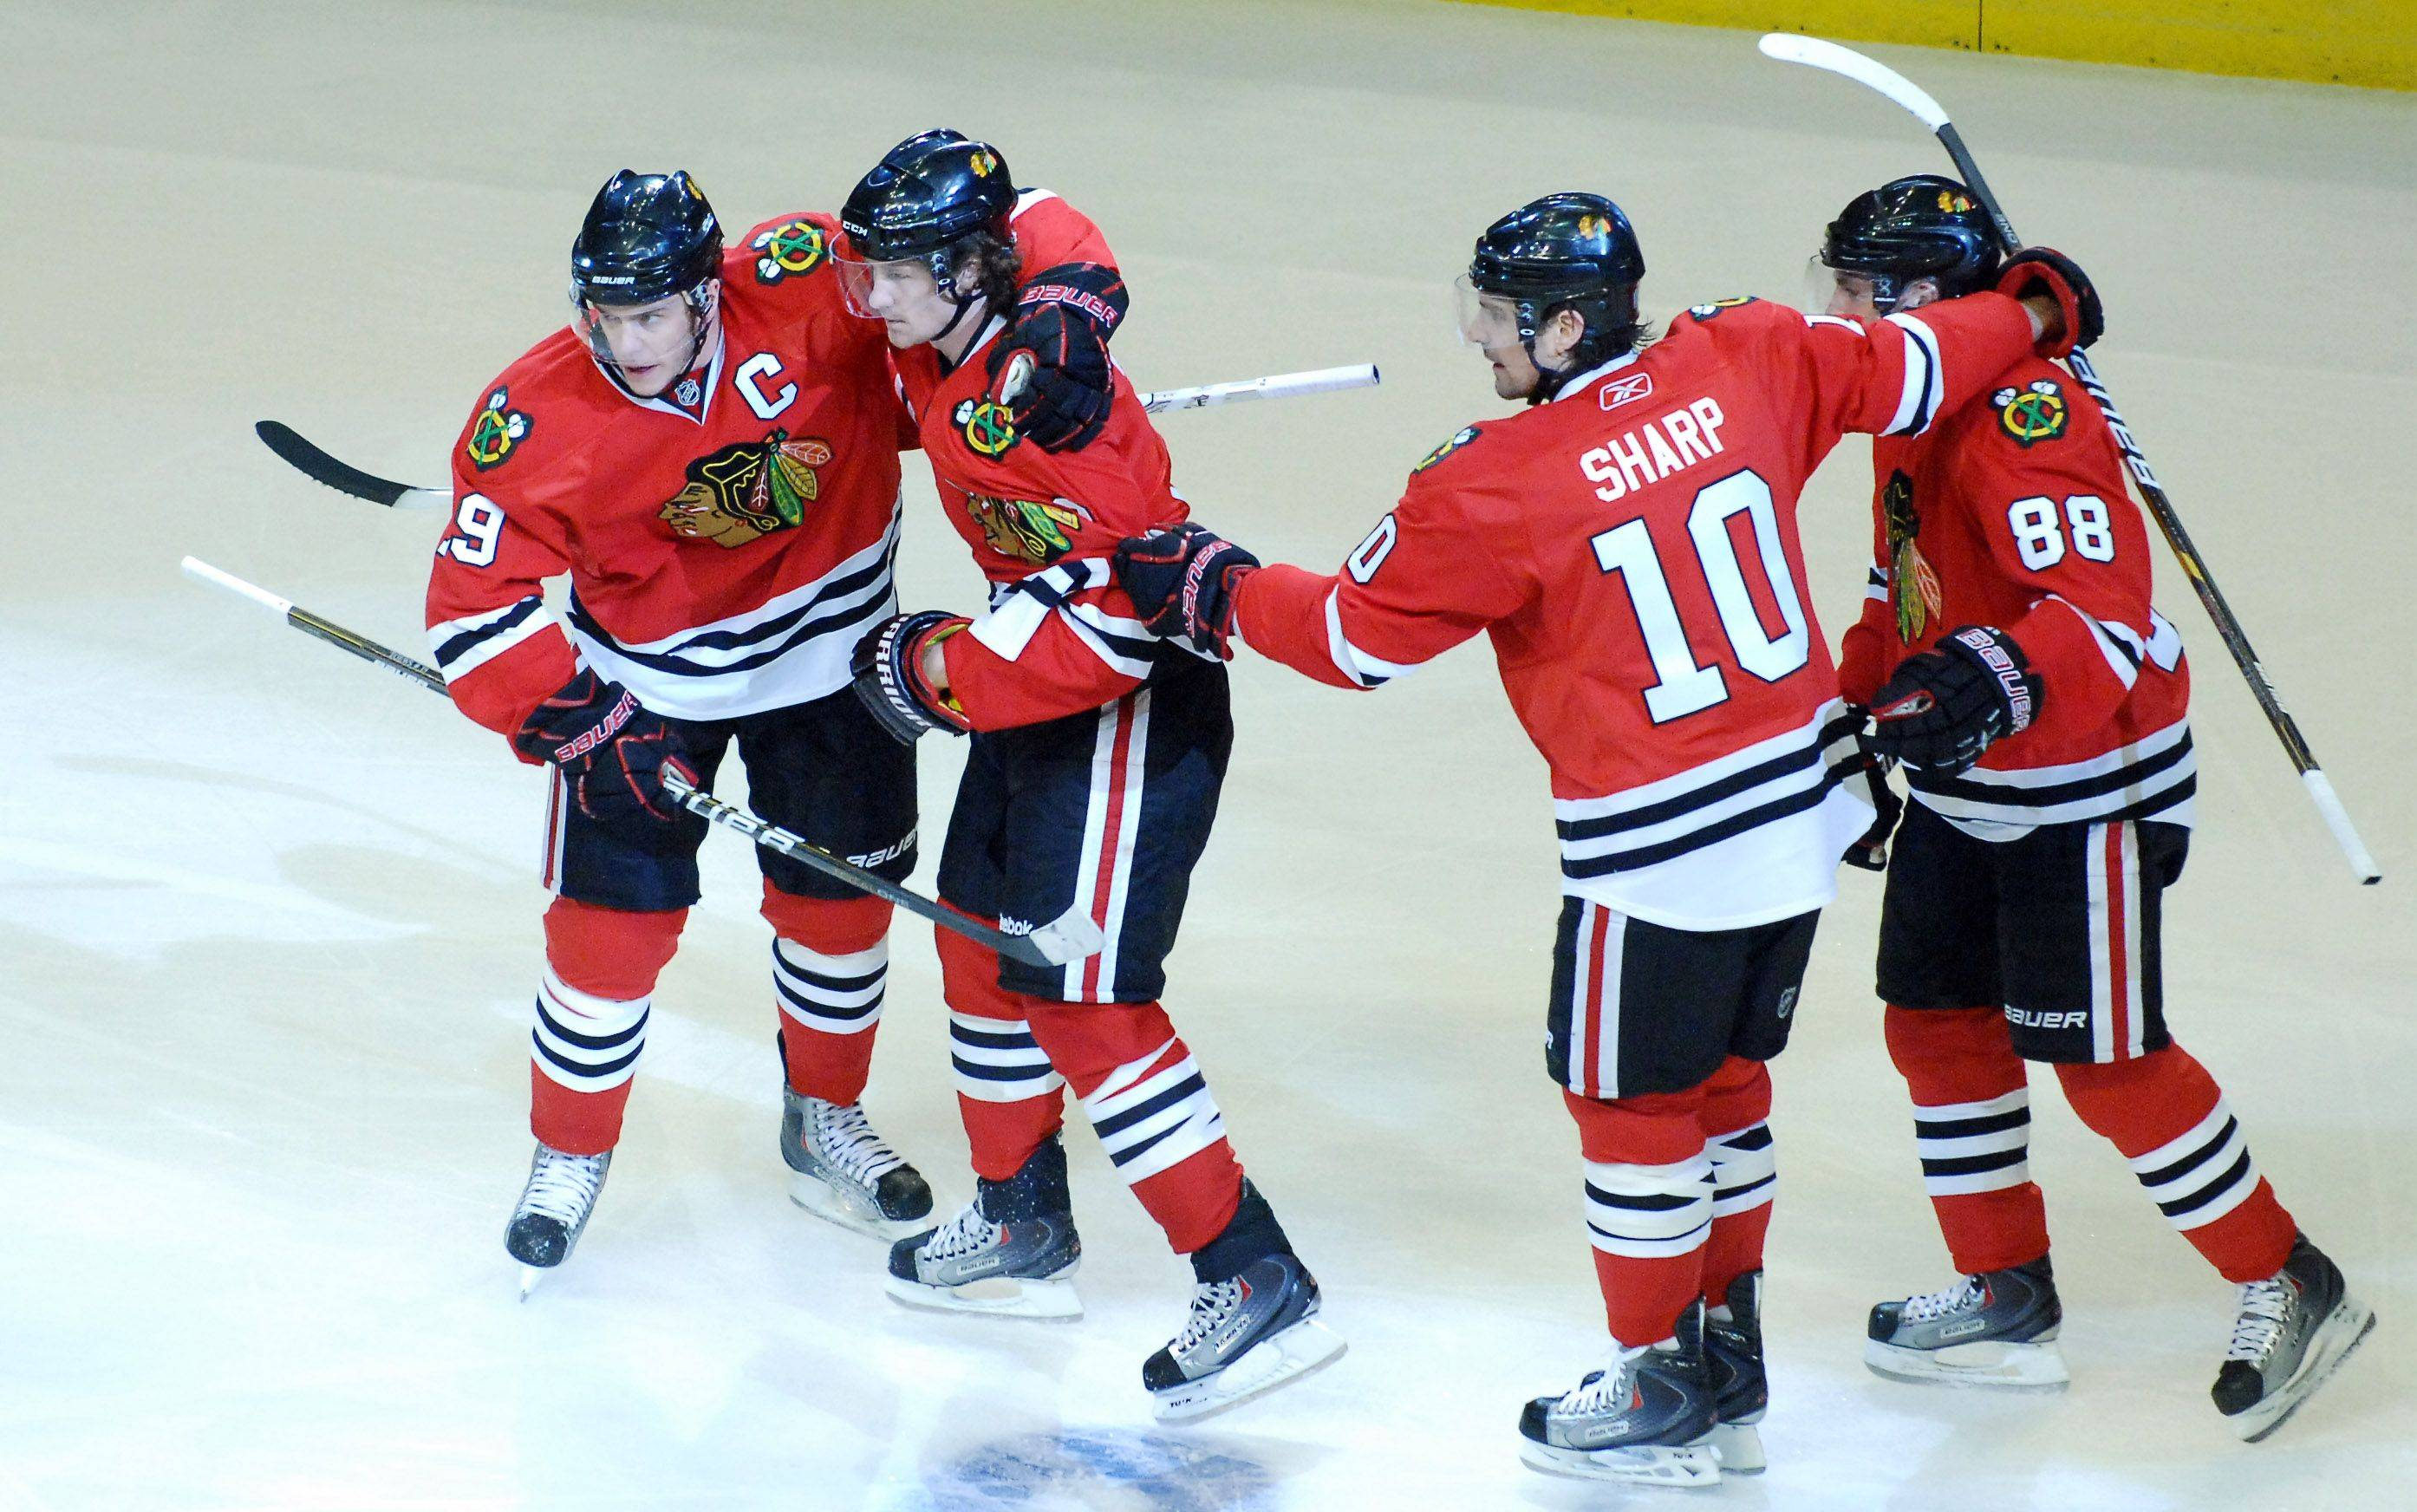 Teammates congratulate Chicago Blackhawks defenseman Duncan Keith (2, second from left) following his first period goal.